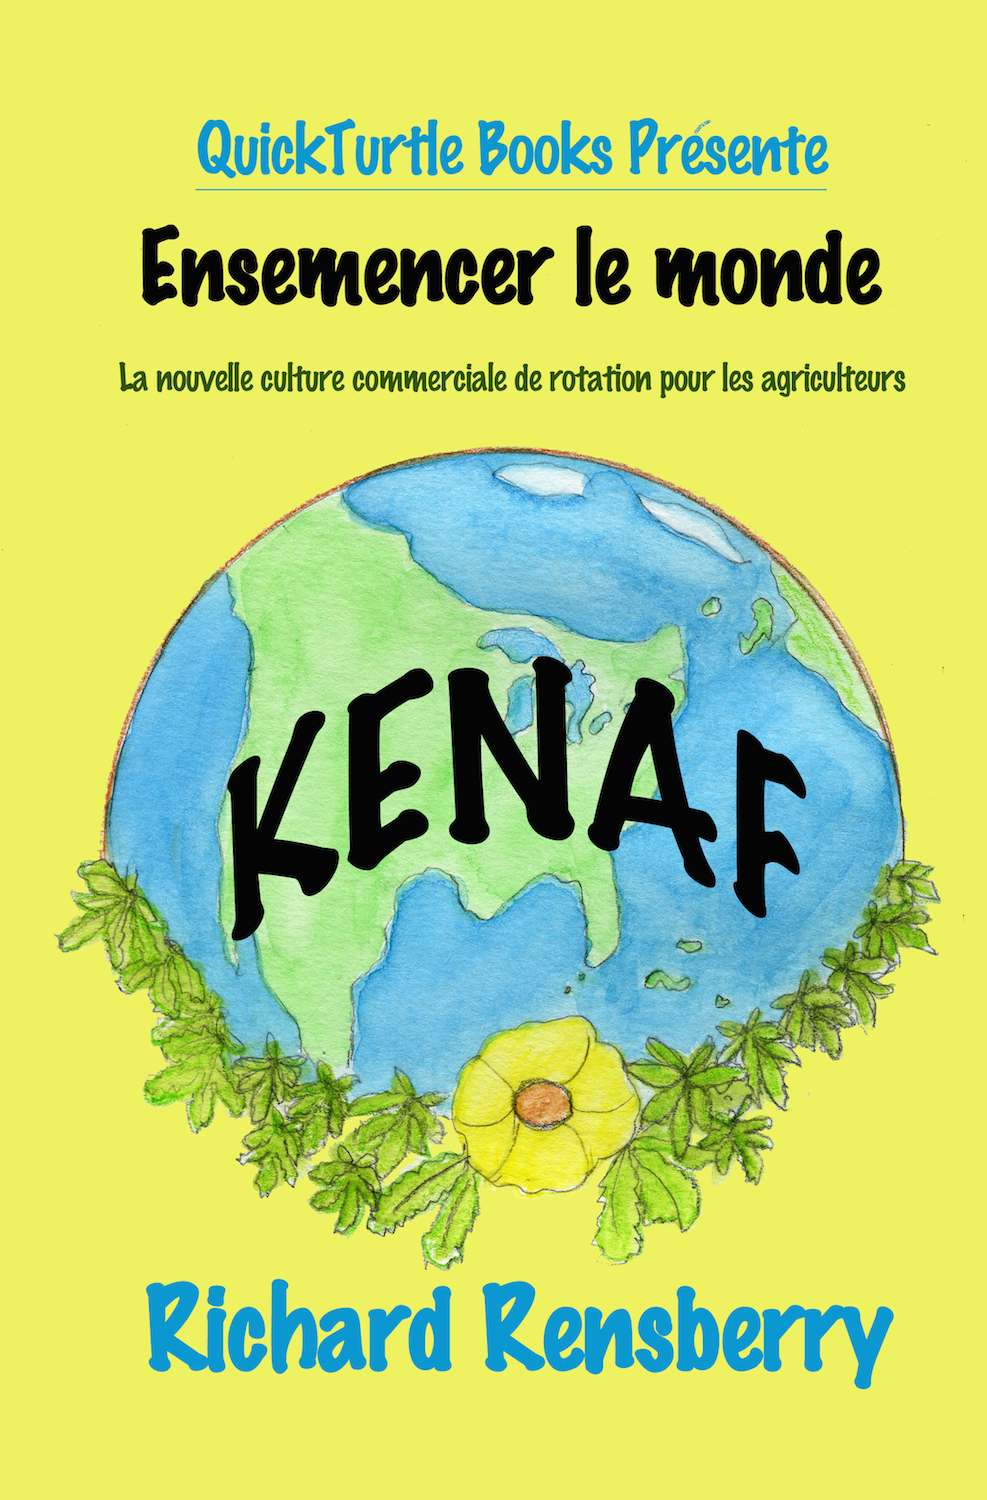 Kenaf, Seeding the World custom book in French.  Written by Michigan author Richard Rensberry and illustrated by Michigan artist Mary Rensberry.